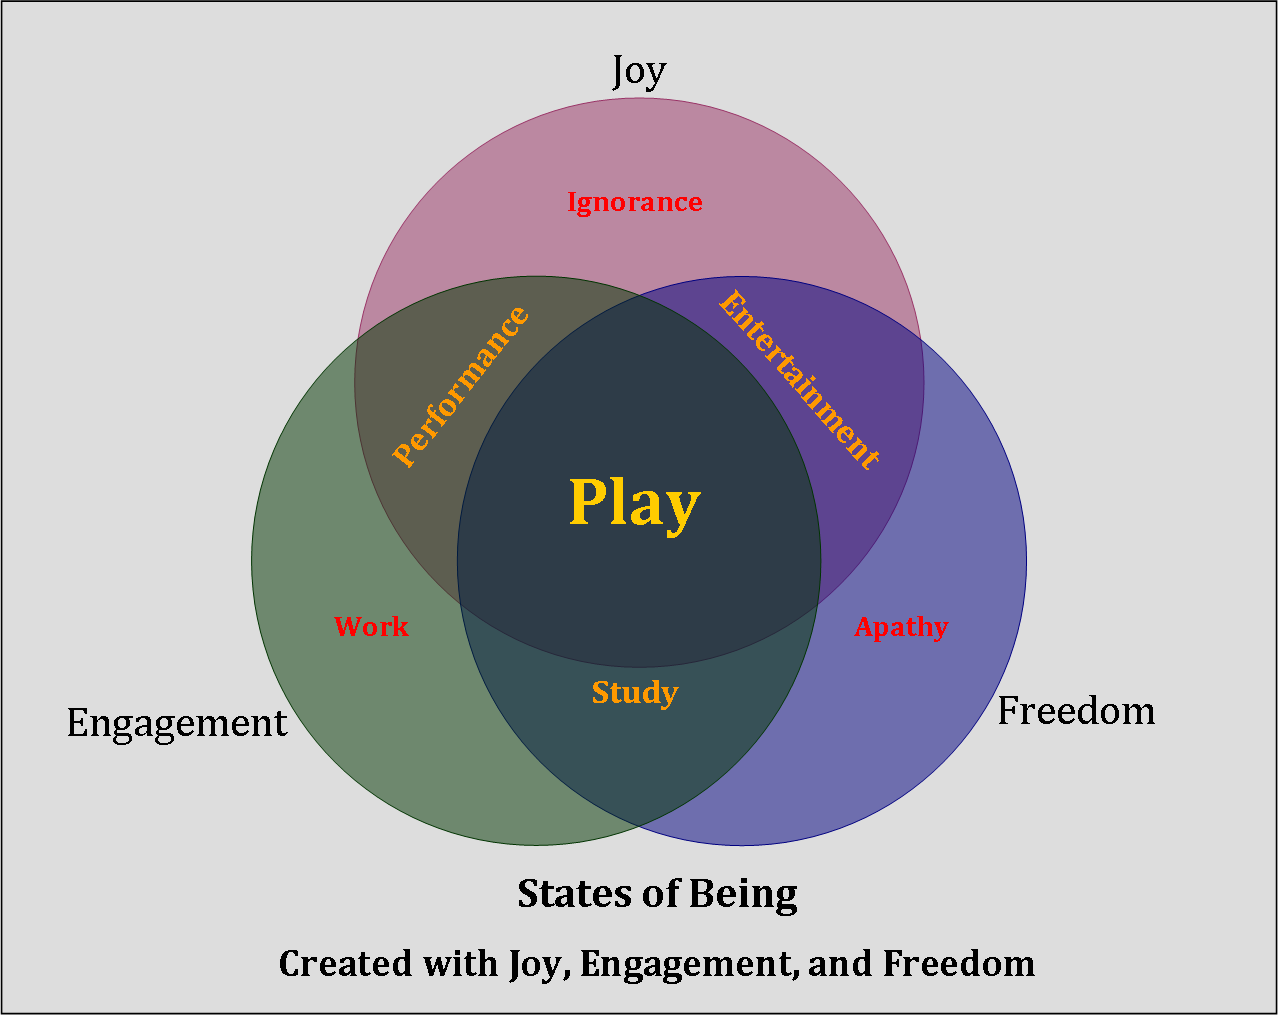 My model for the Seven States of Being created with engagement, joy, and freedom.